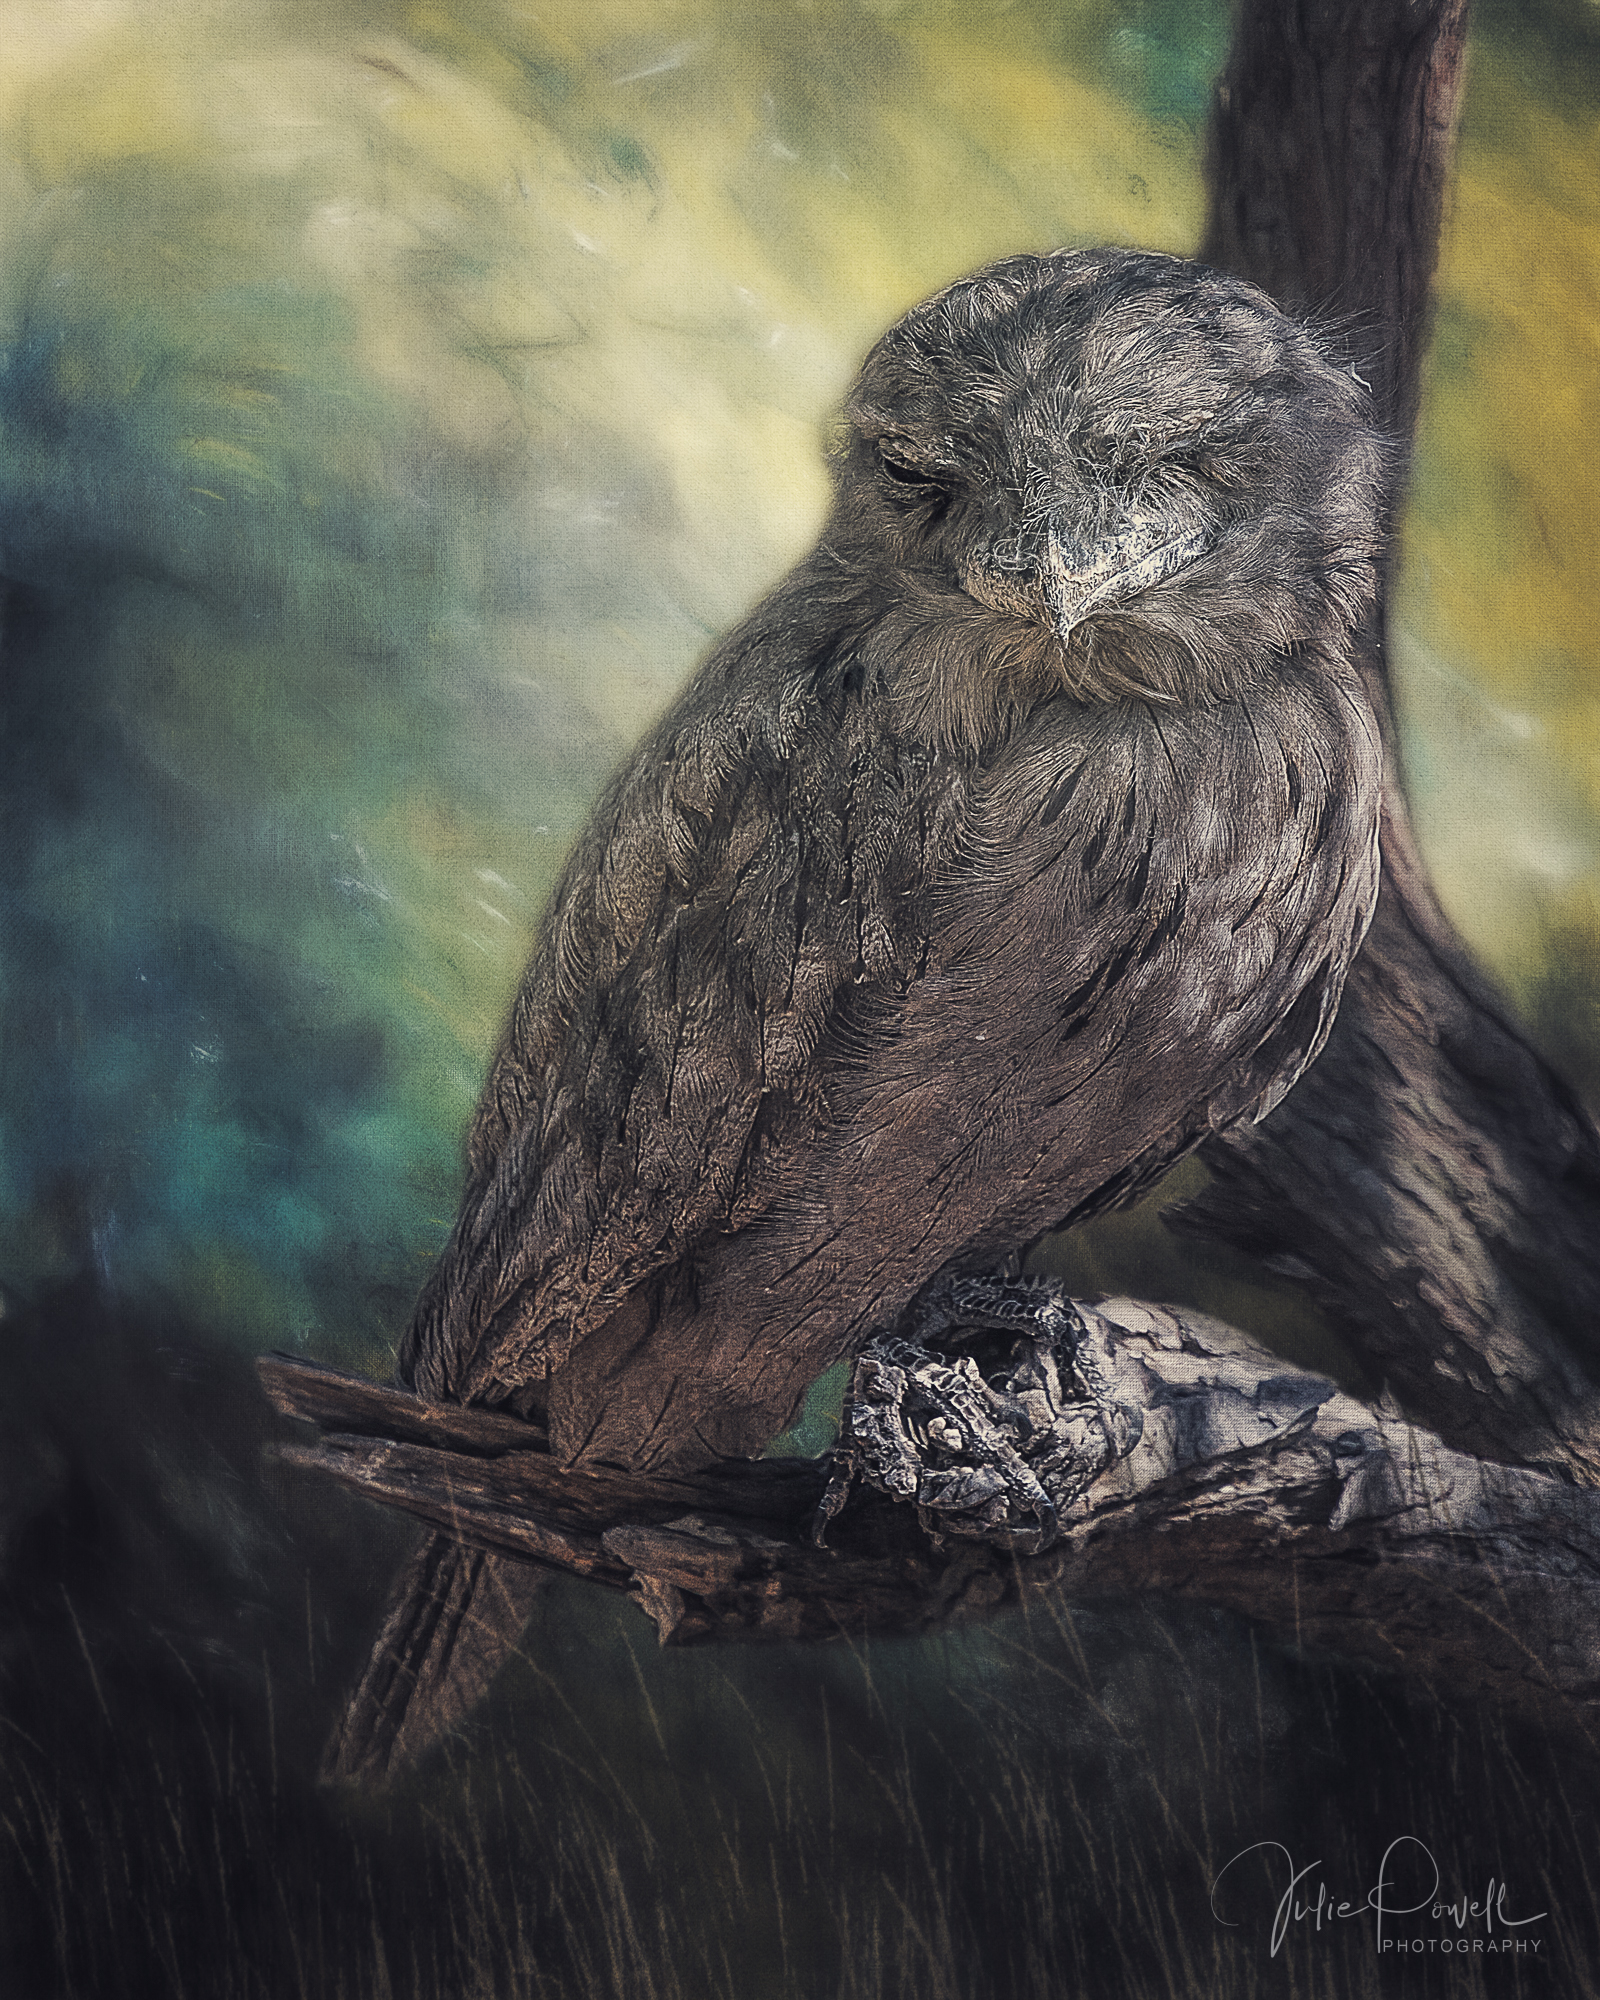 JuliePowell_Tawny Frog Mouth.jpg